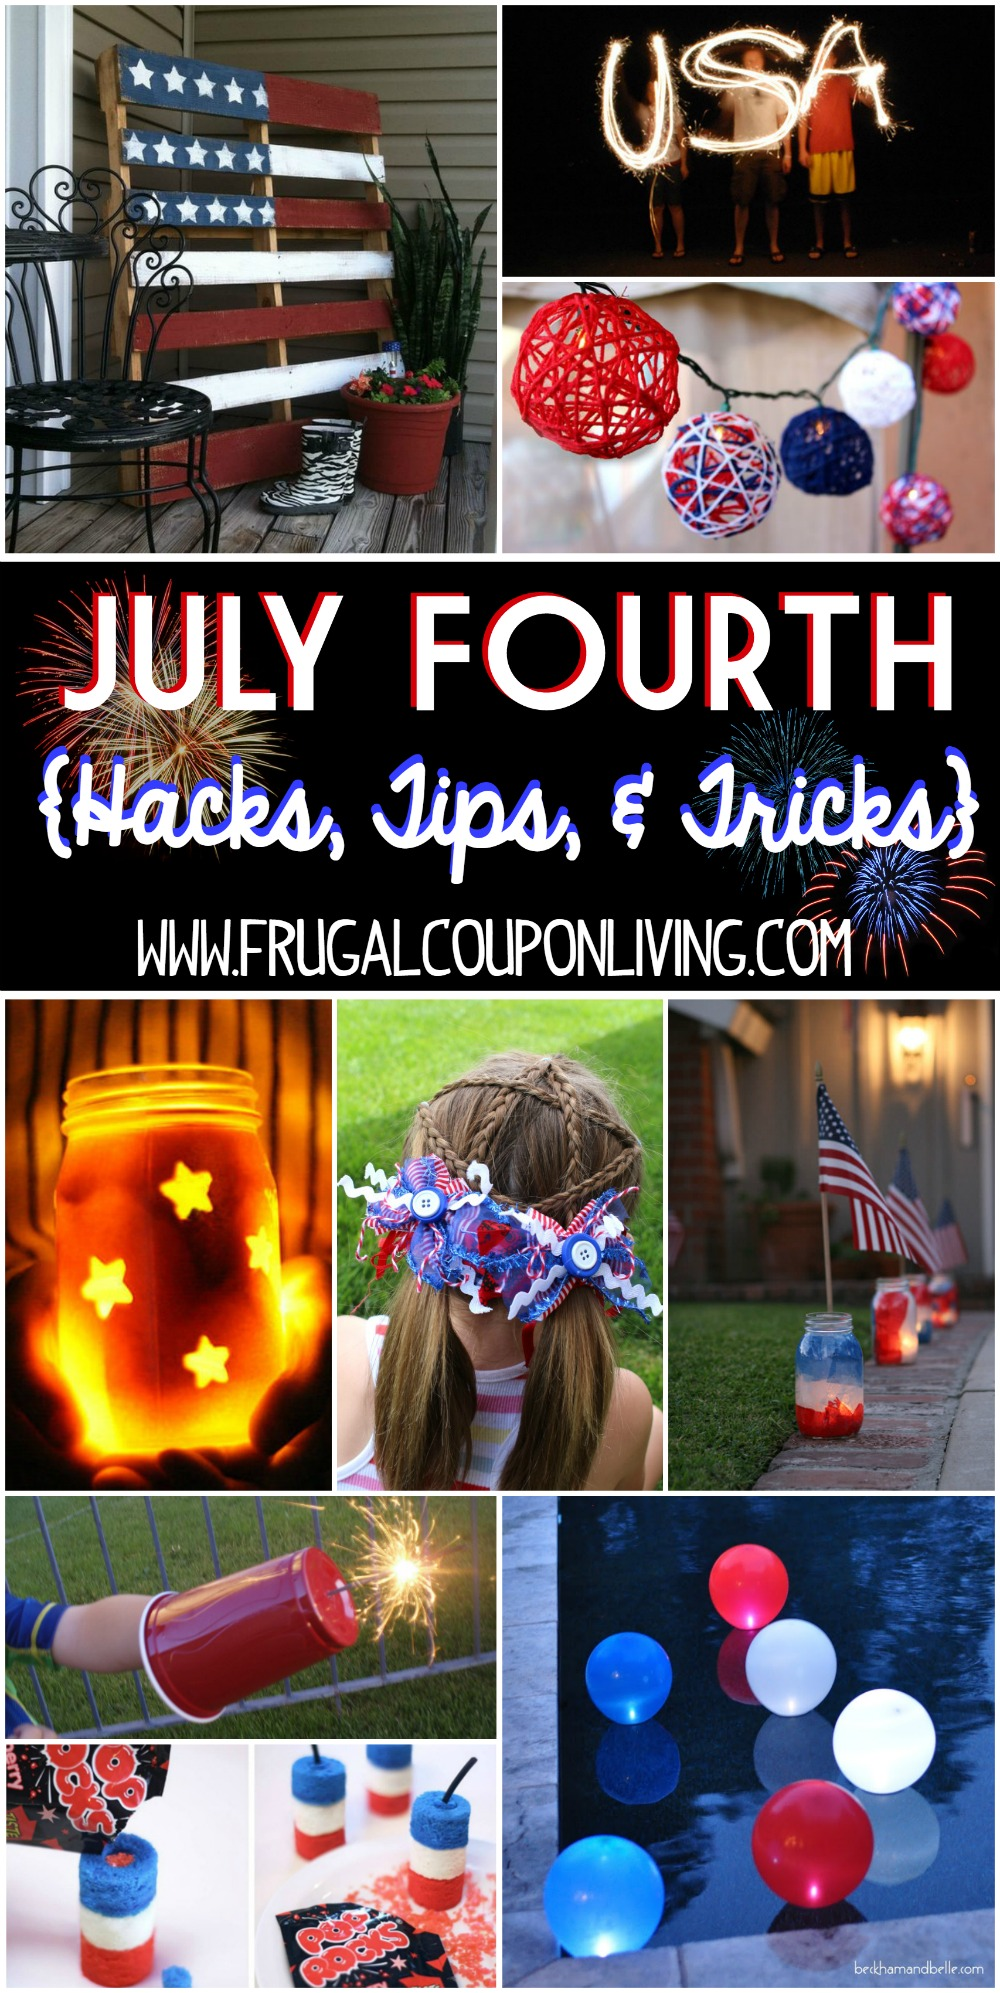 july-fourth-hacks-tips-tricks-frugal-coupon-living